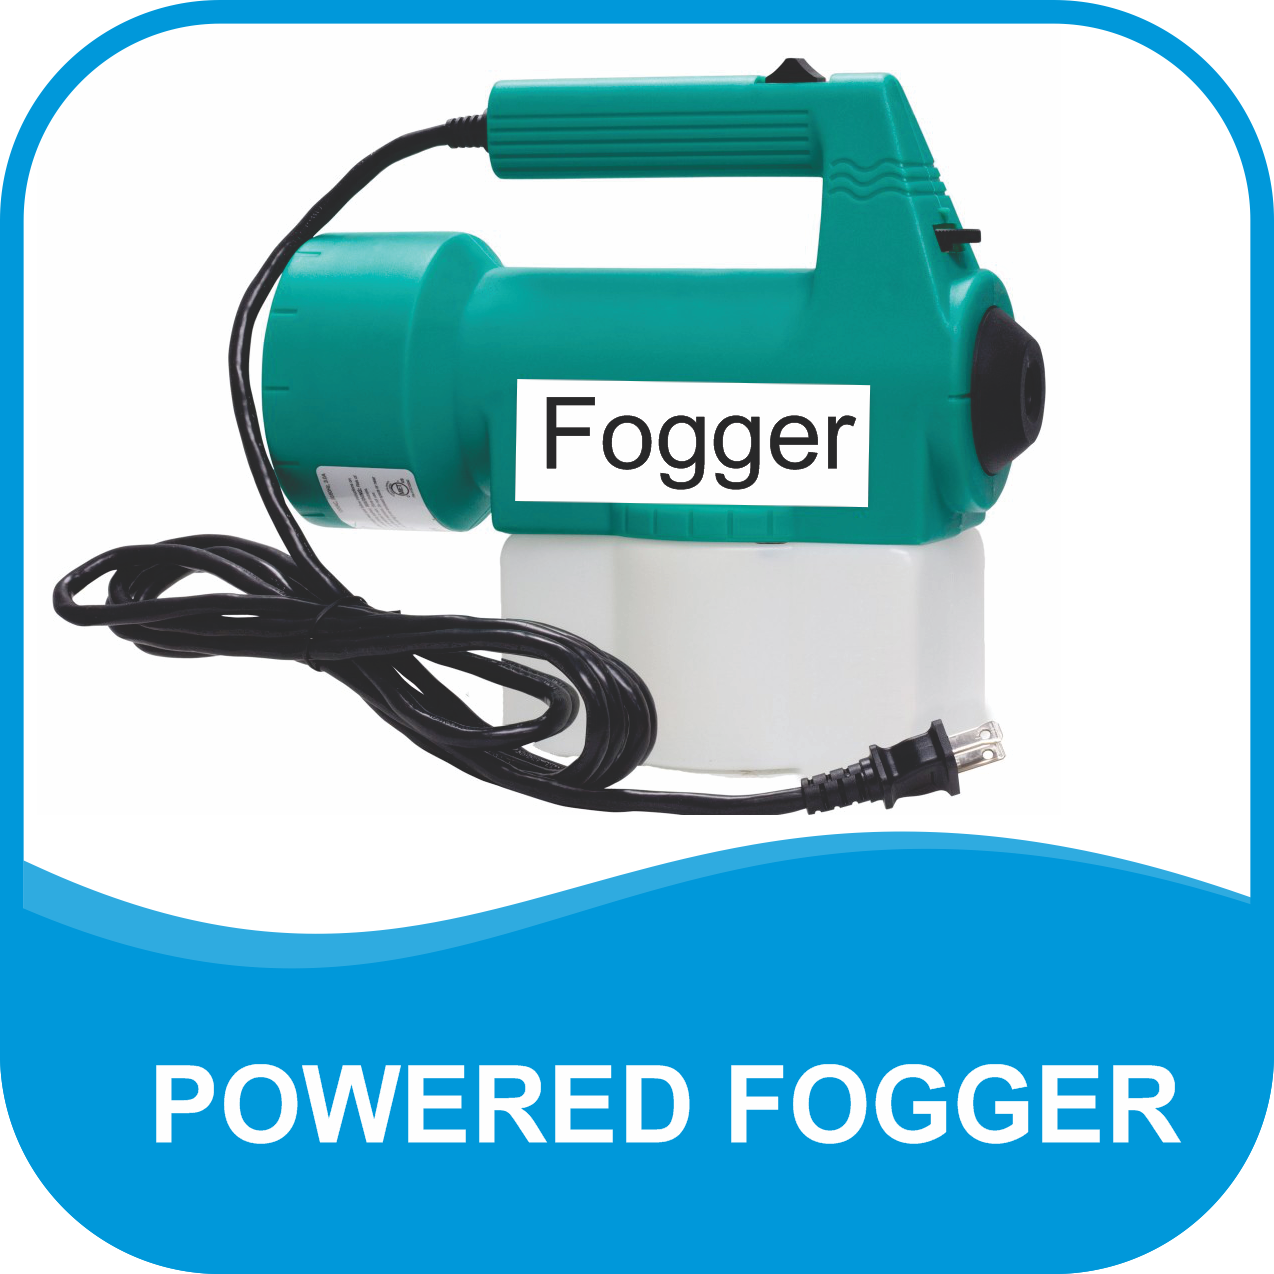 Powered Fogger